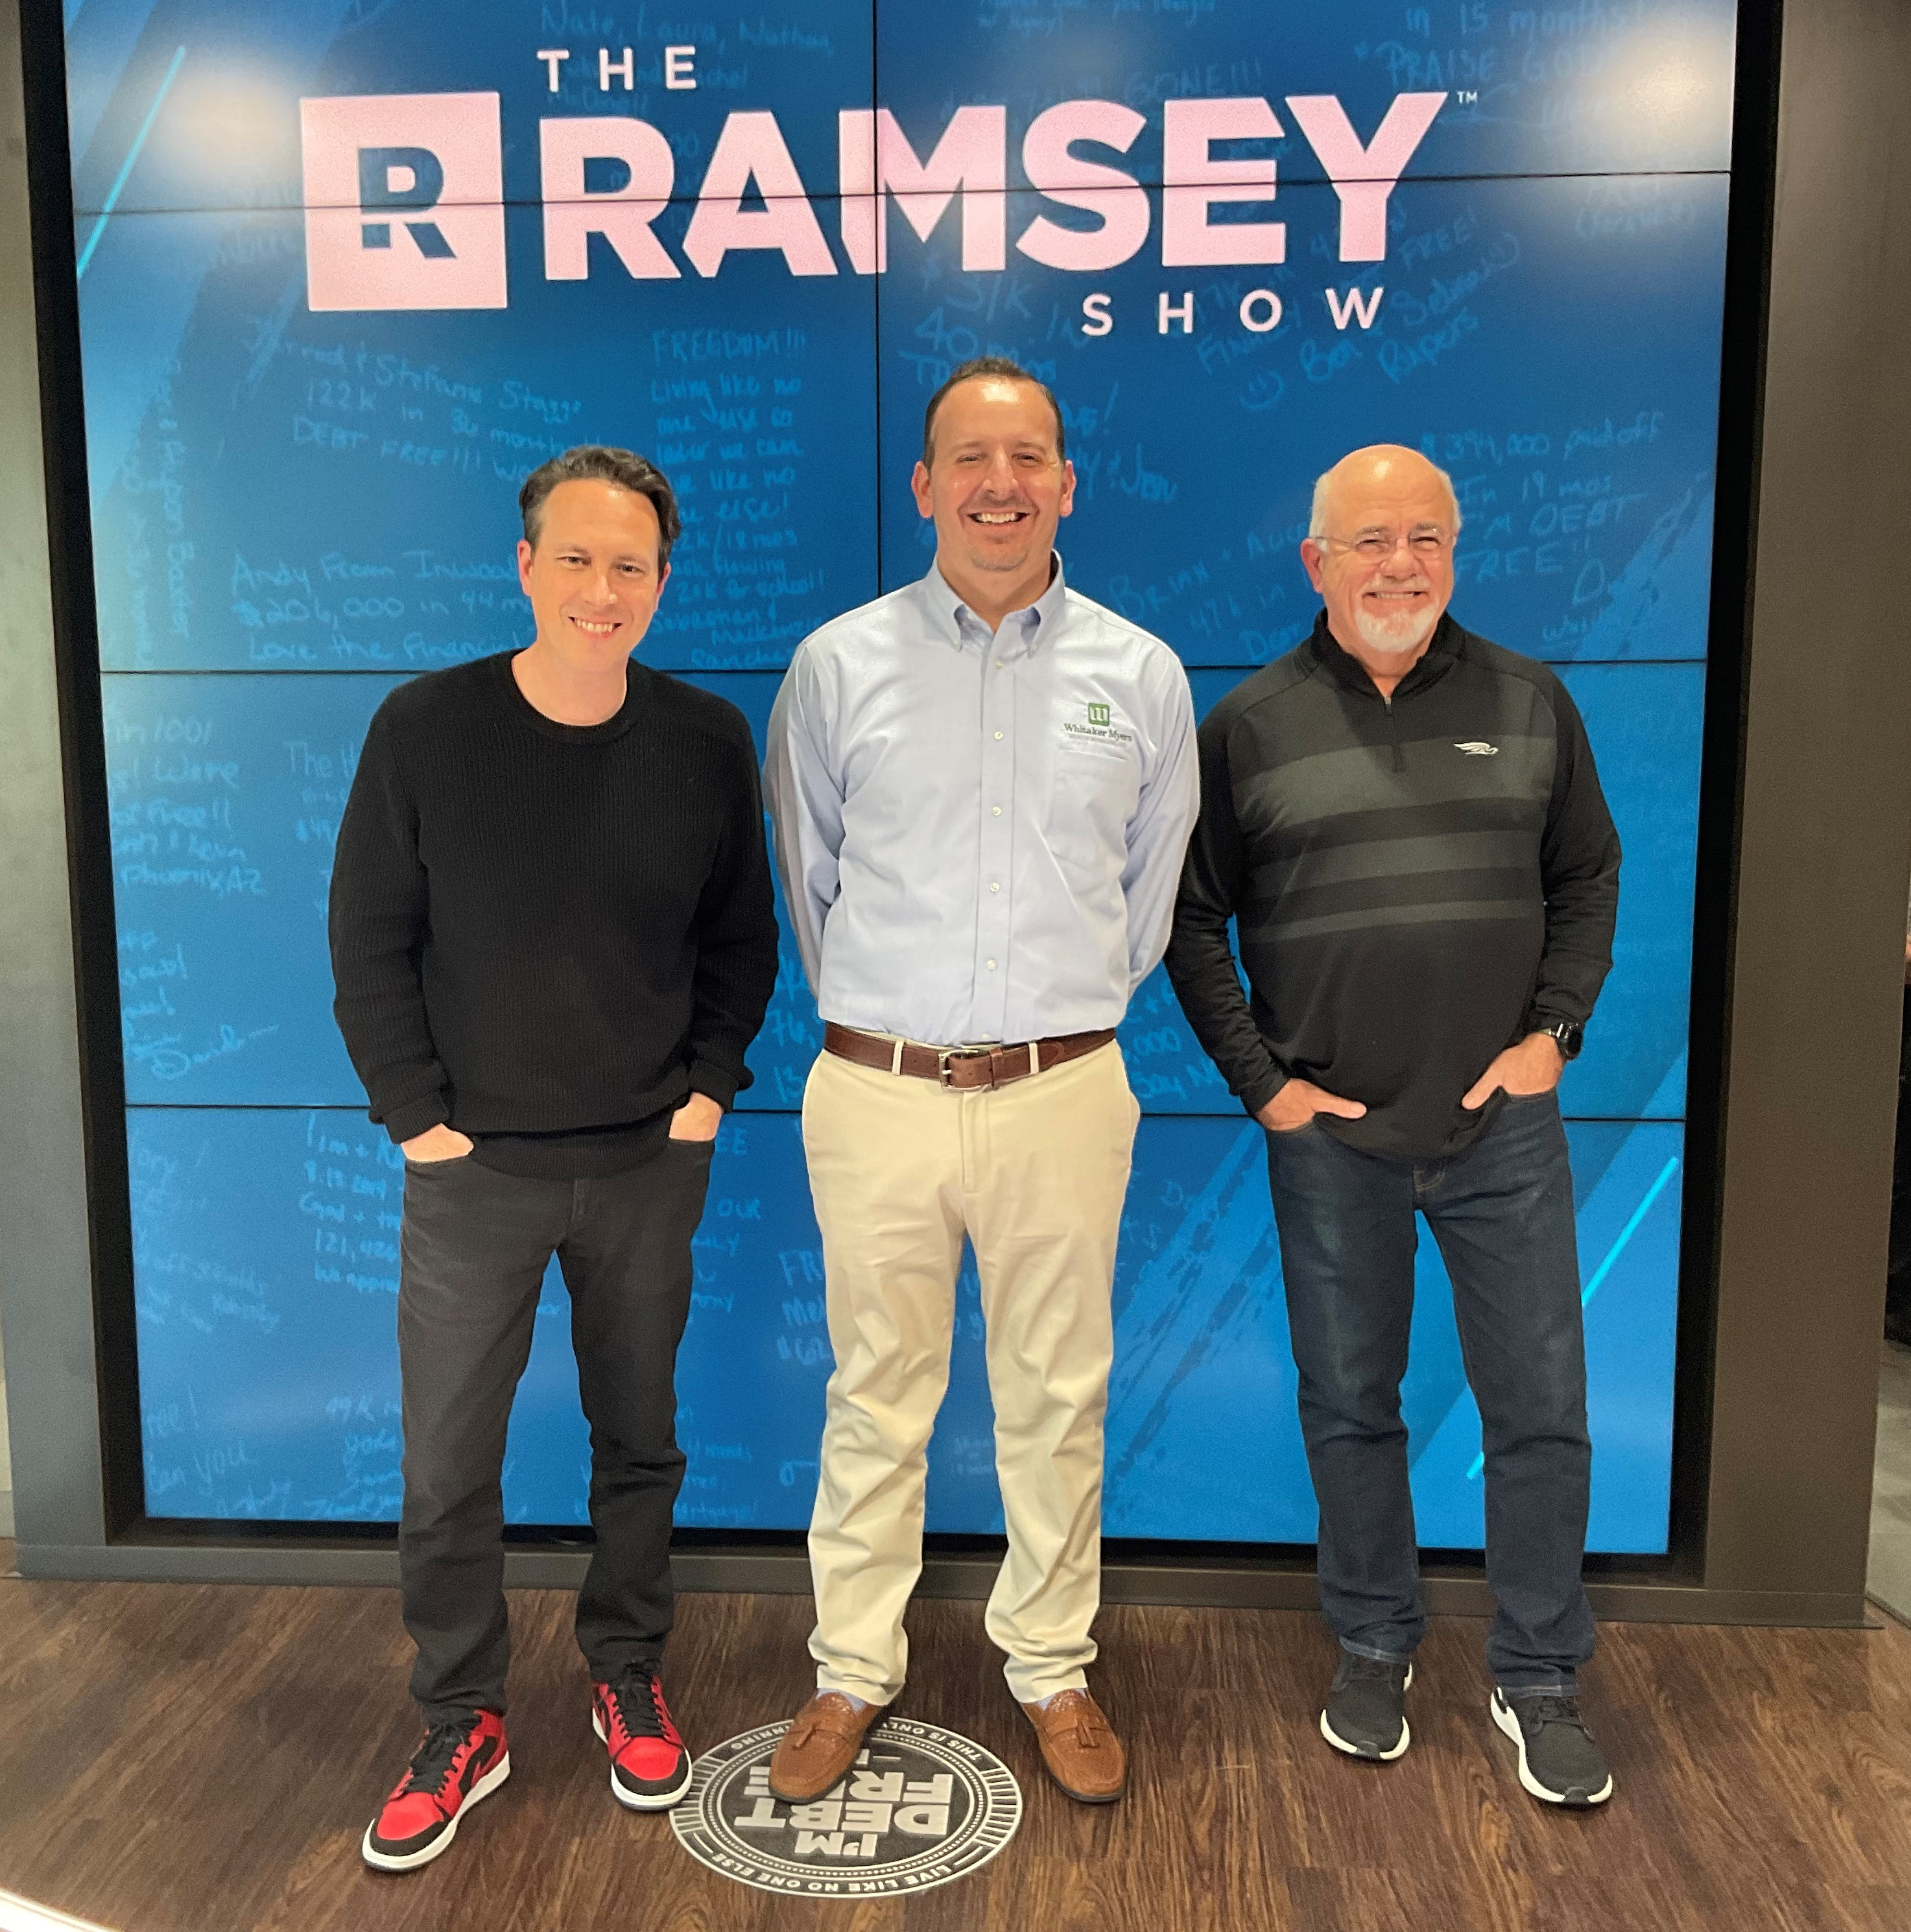 John-mark Young, financial advisor Canton OH